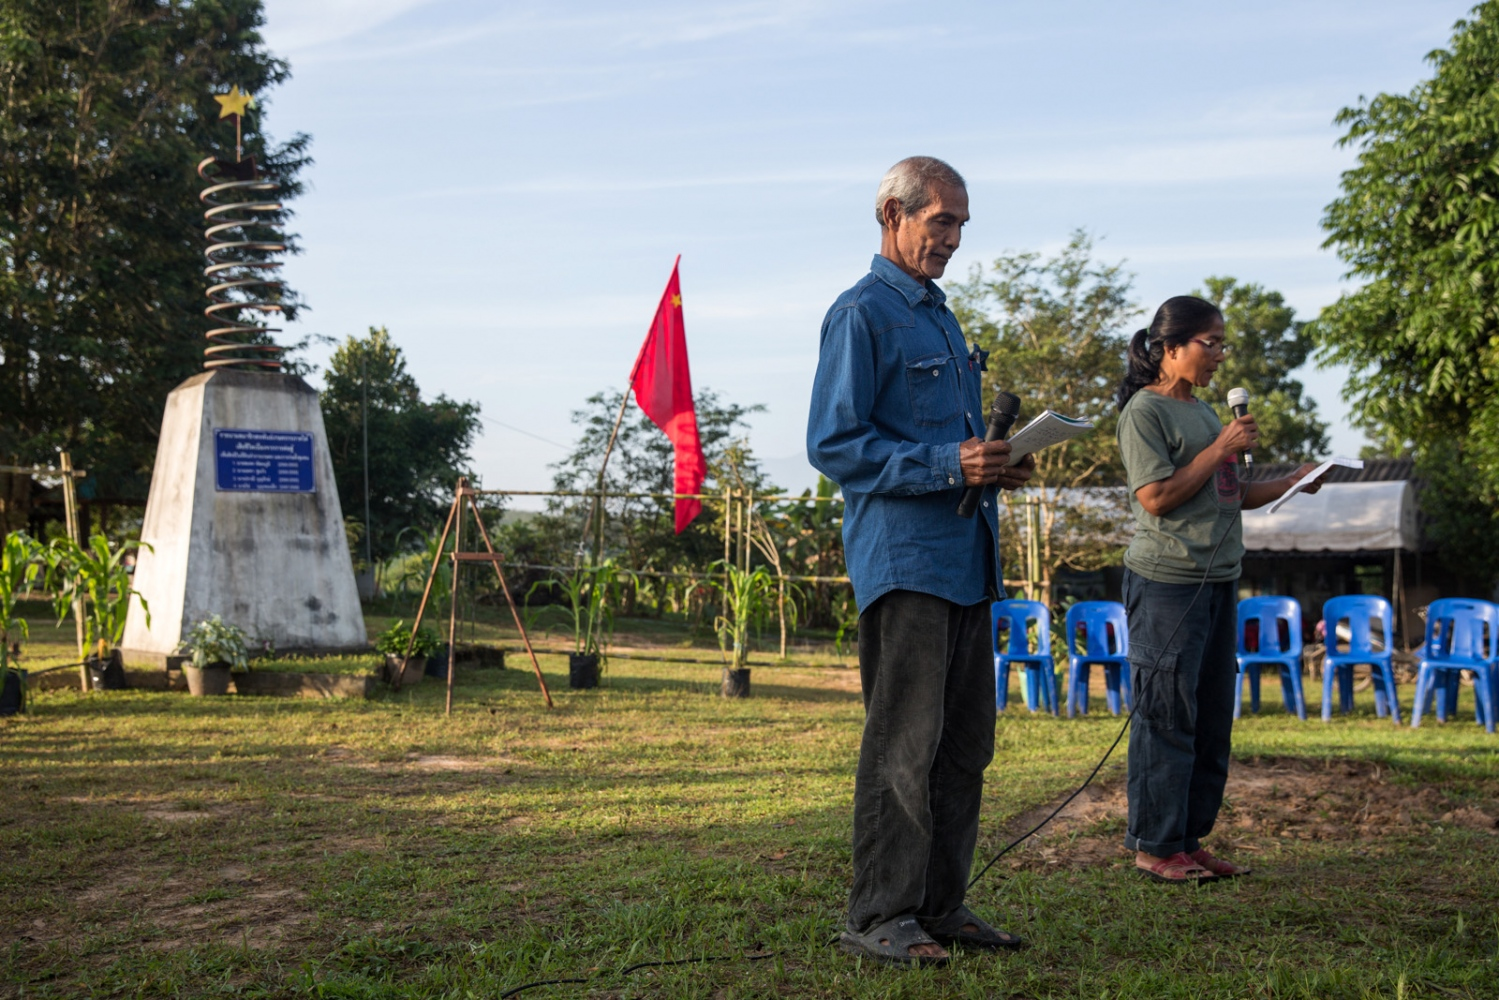 Pasit Bunban (left) and Pi Puang (right) they thank visitors for coming to the 10 year anniversary celebrations since the founding of the Southern Peasant's Federation of Thailand (SPFT). December 2018.